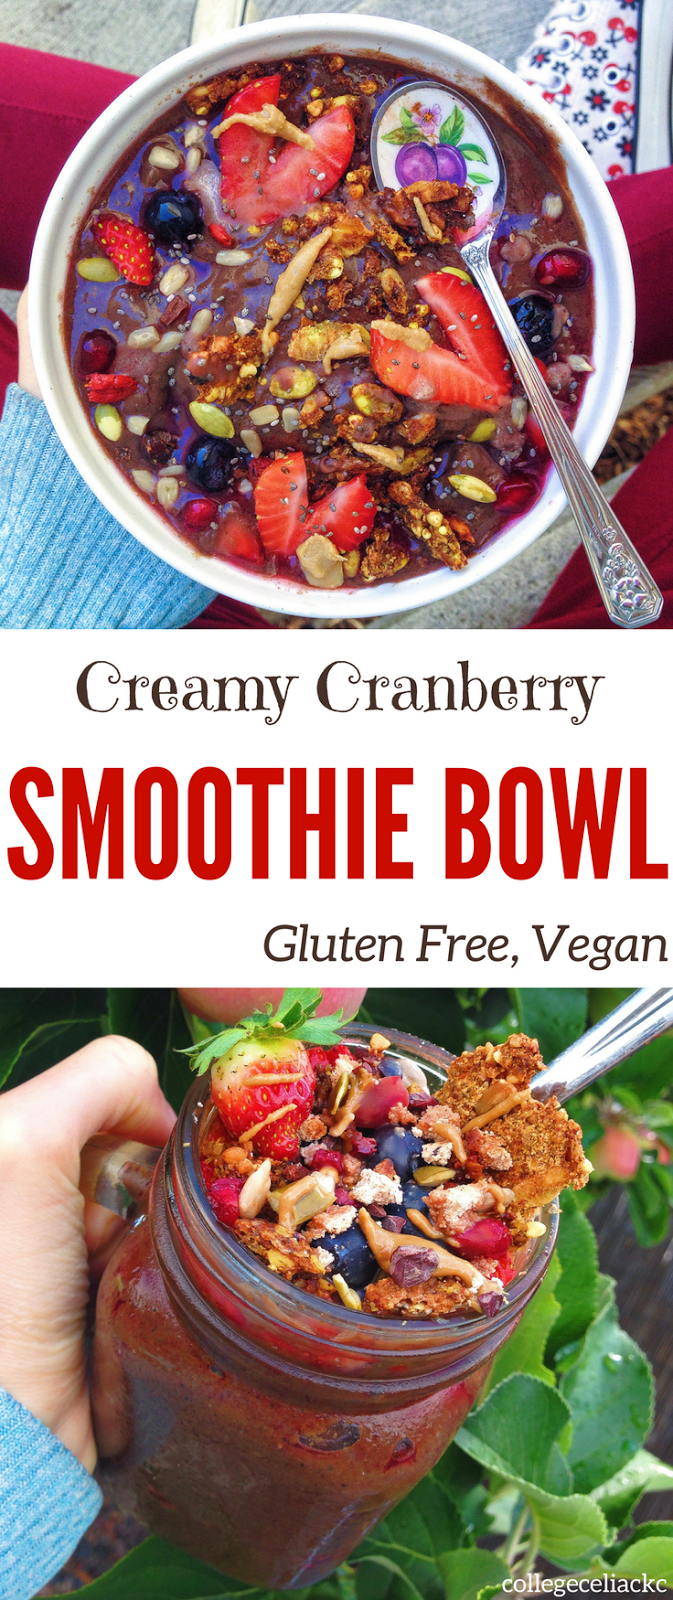 Creamy Cranberry Smoothie Bowl (Gluten Free, Vegan)